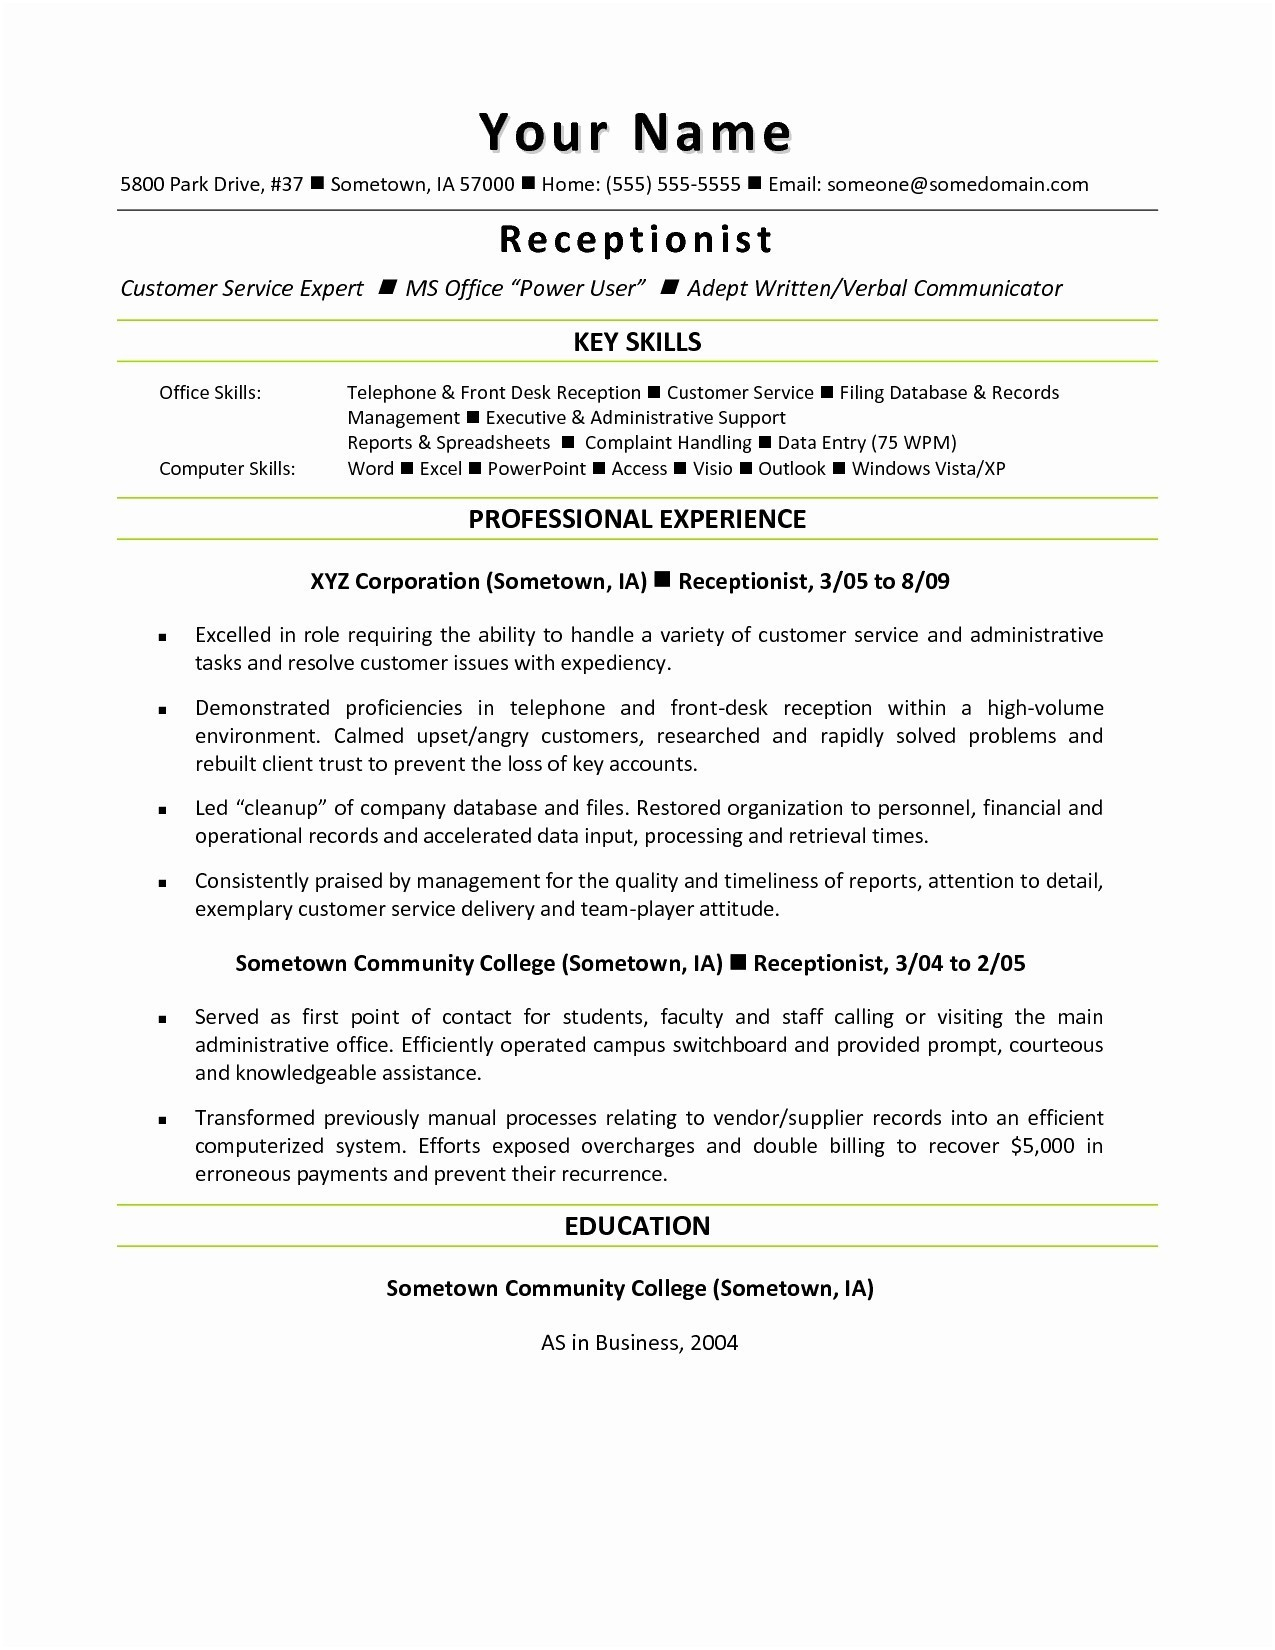 Nursing Resume Cover Letter Template Free - Resume Microsoft Word Fresh Resume Mail format Sample Fresh